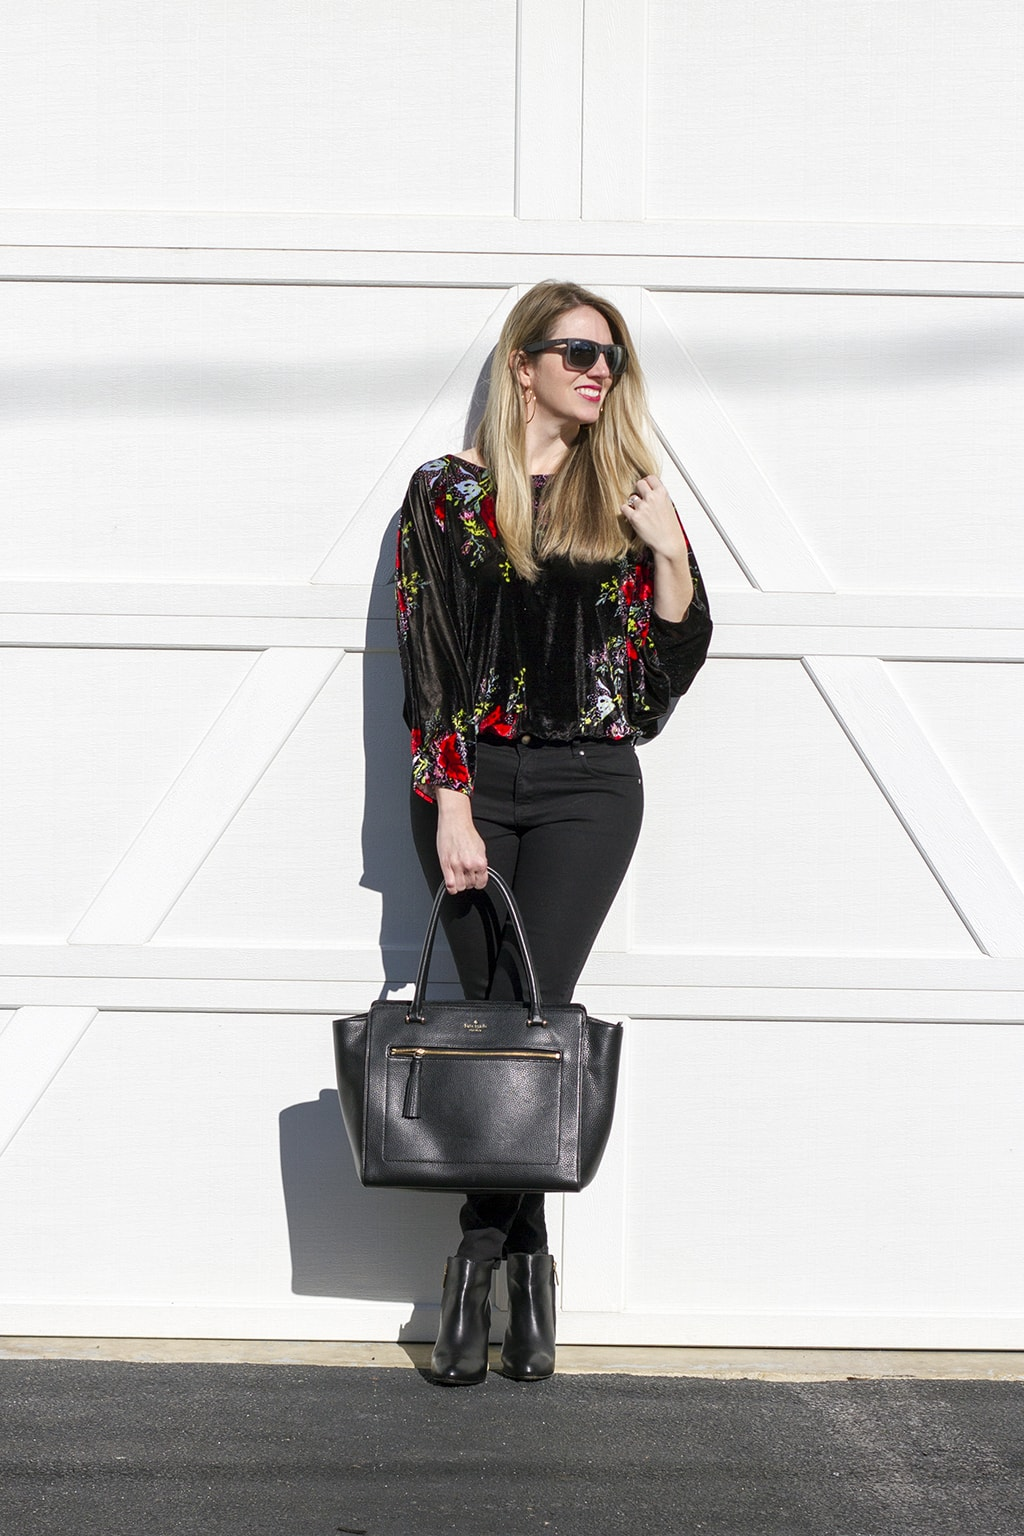 Velvet Bodysuit and Kate Spade Bag